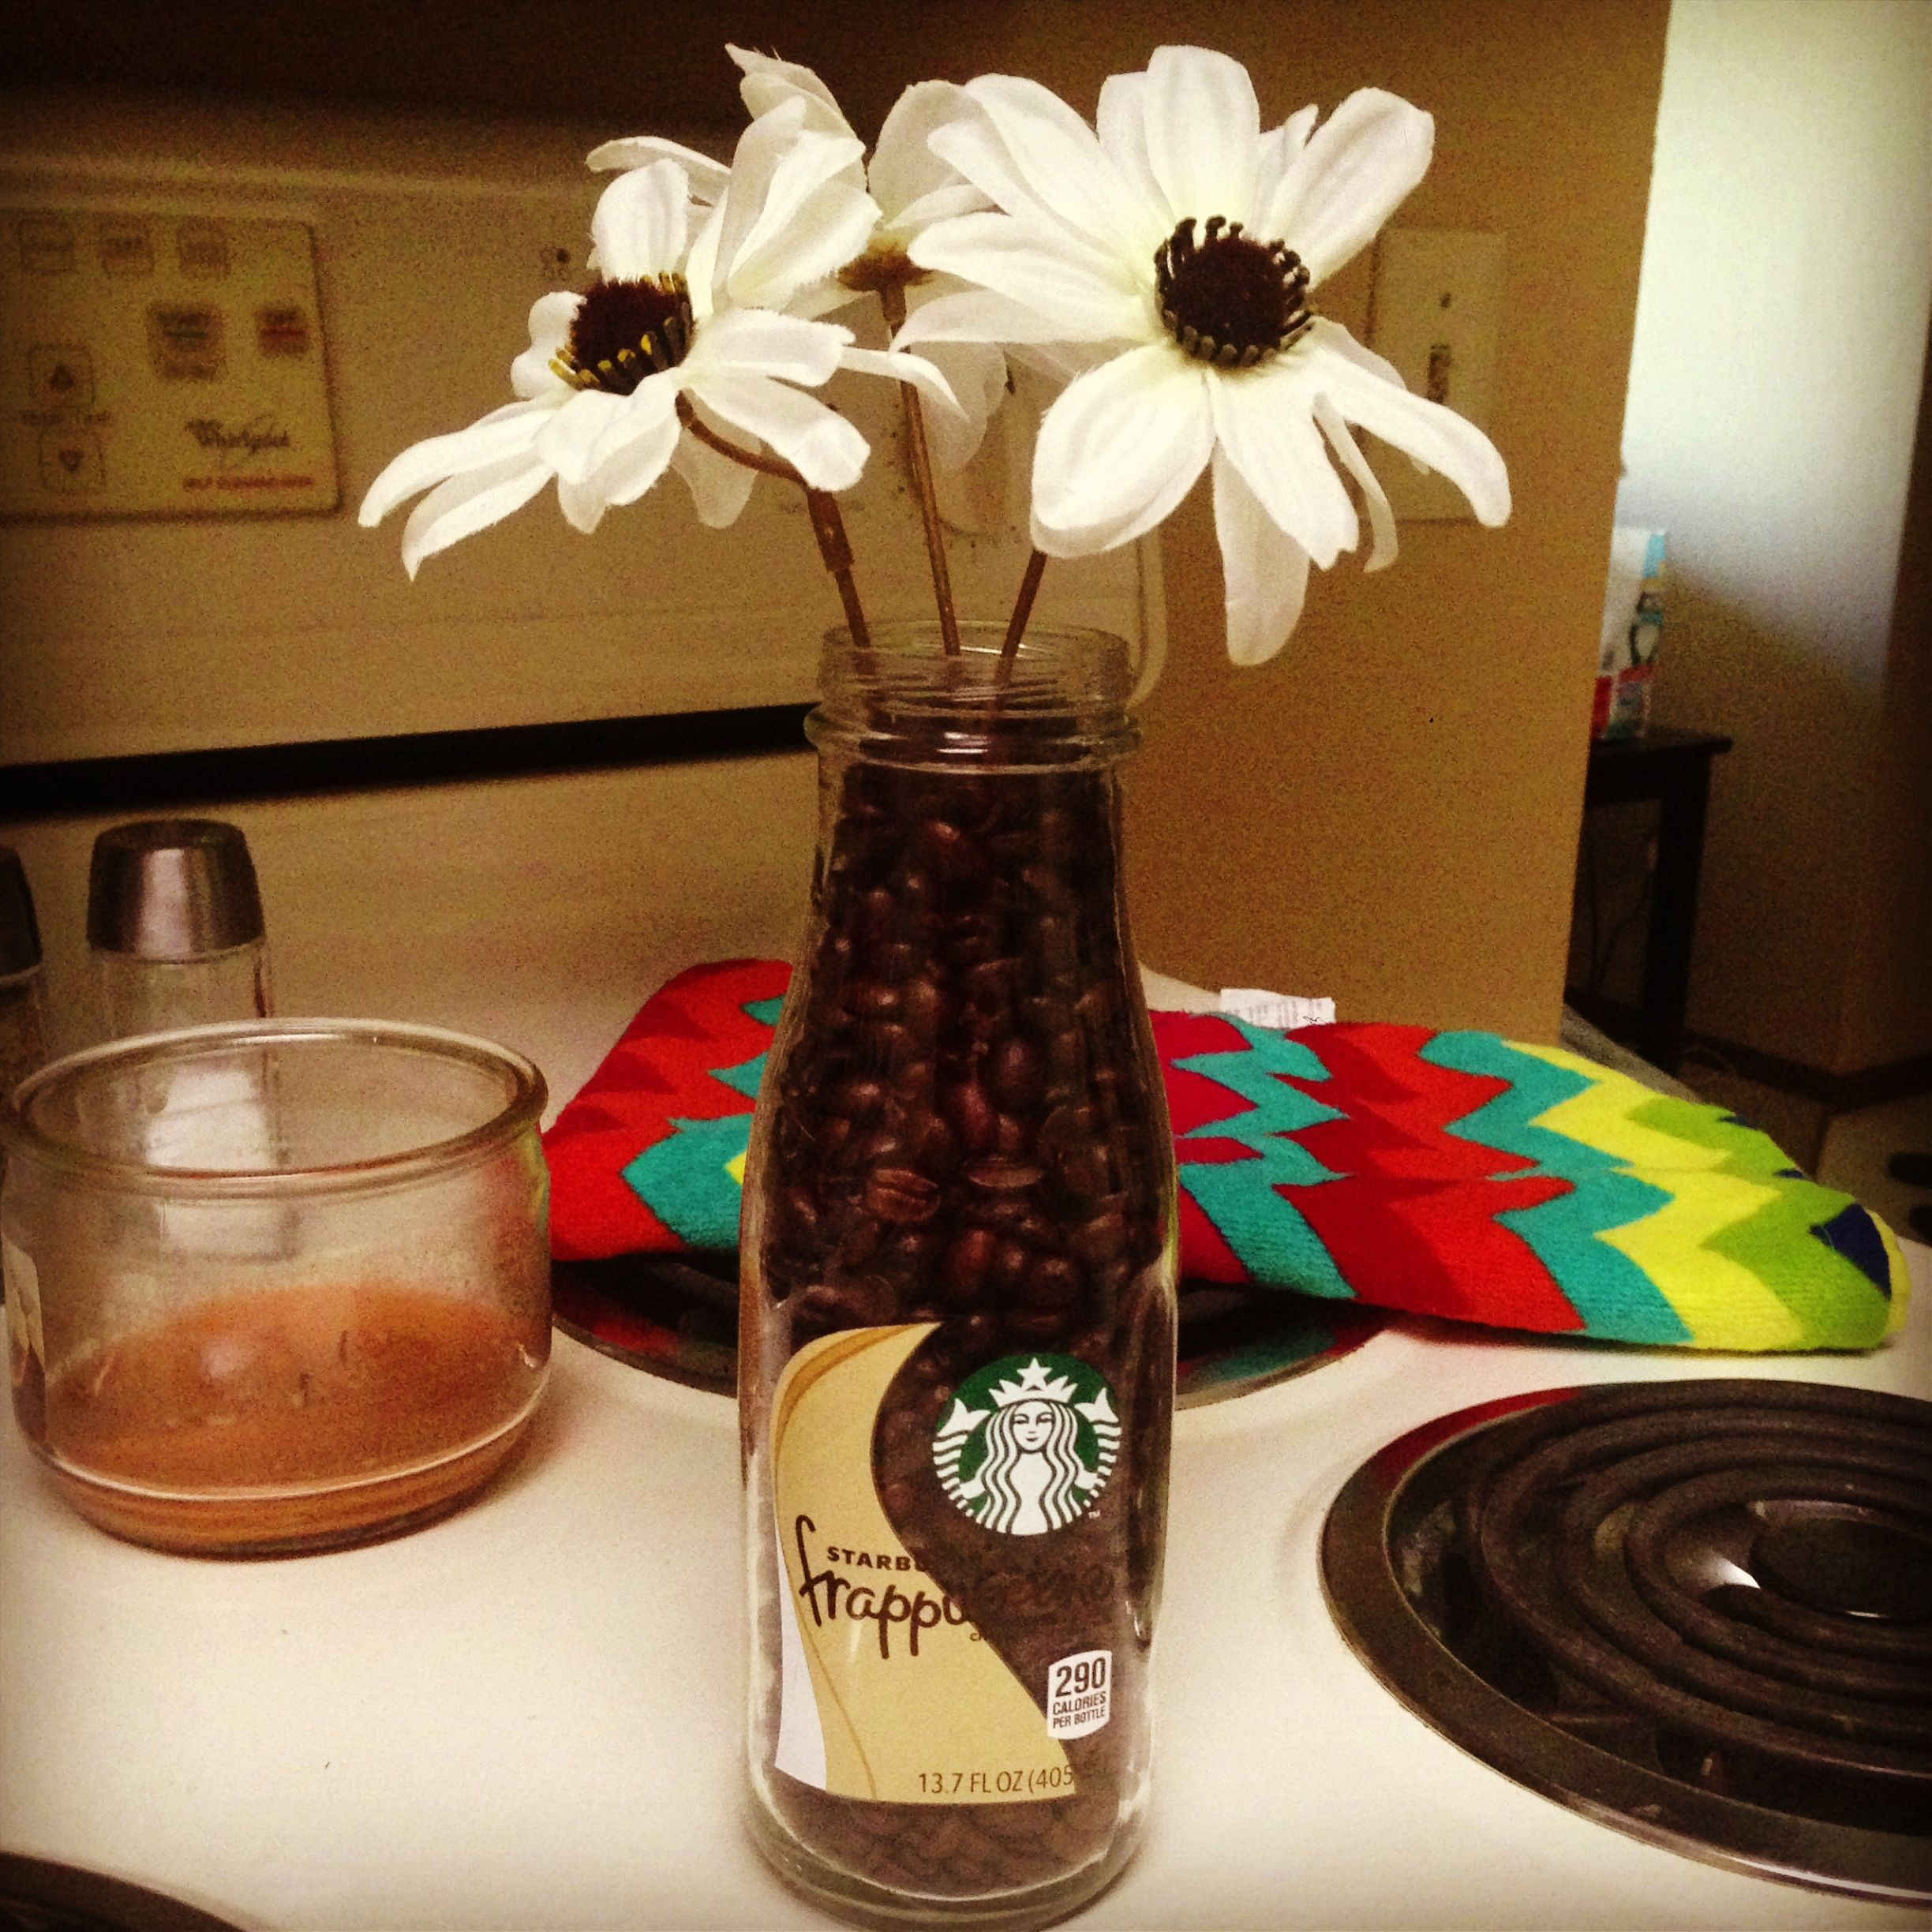 Christmas Decorations For Coffee Shops: Starbucks Bottle With Coffee Beans With Some Simple